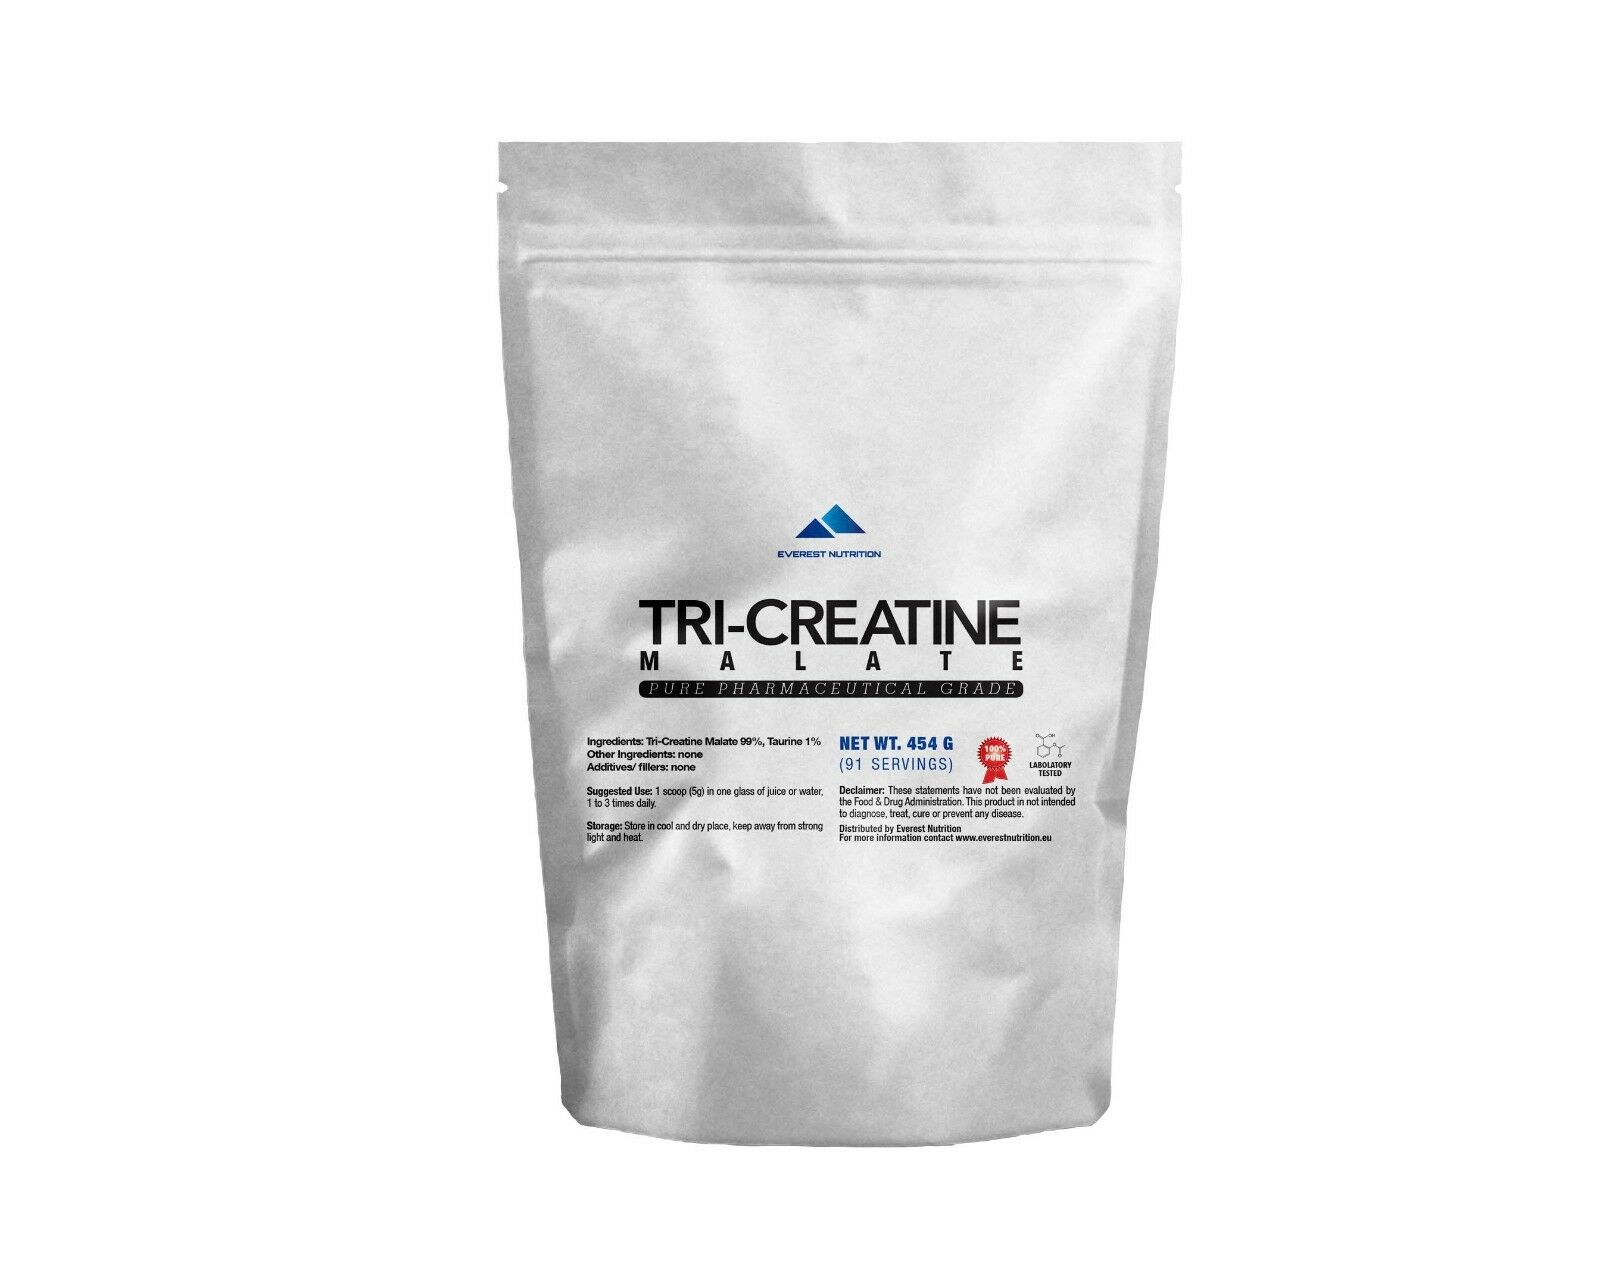 TCM TRI CREATINE MALATE 100% PURE POWDER LEAN MUSCLE WITHOUT BLOAT